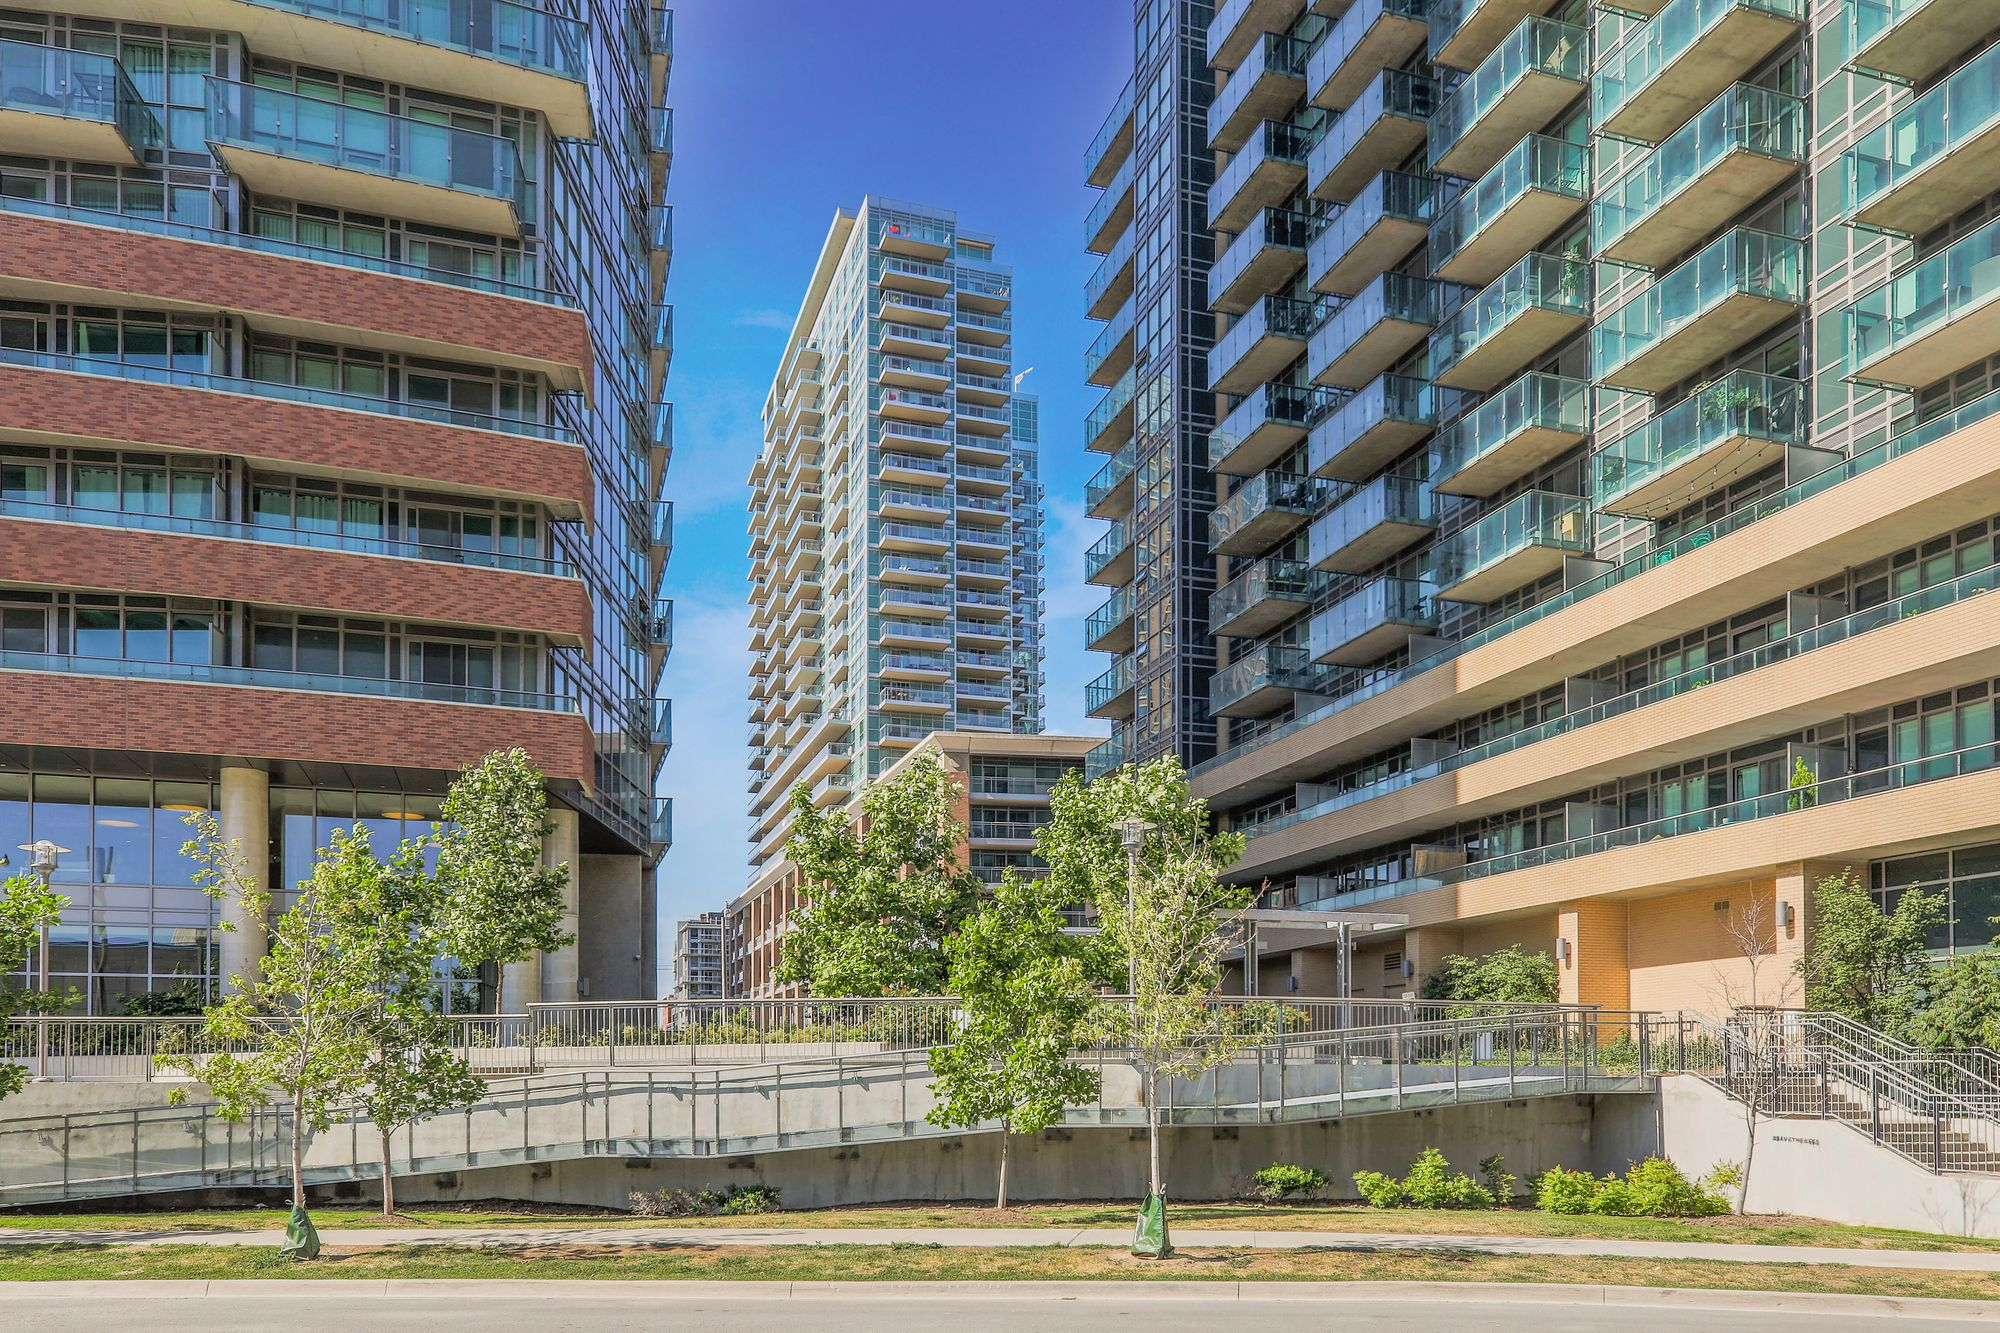 100 Western Battery Rd. This condo at Vibe at Liberty Village is located in  West End, Toronto - image #1 of 8 by Strata.ca